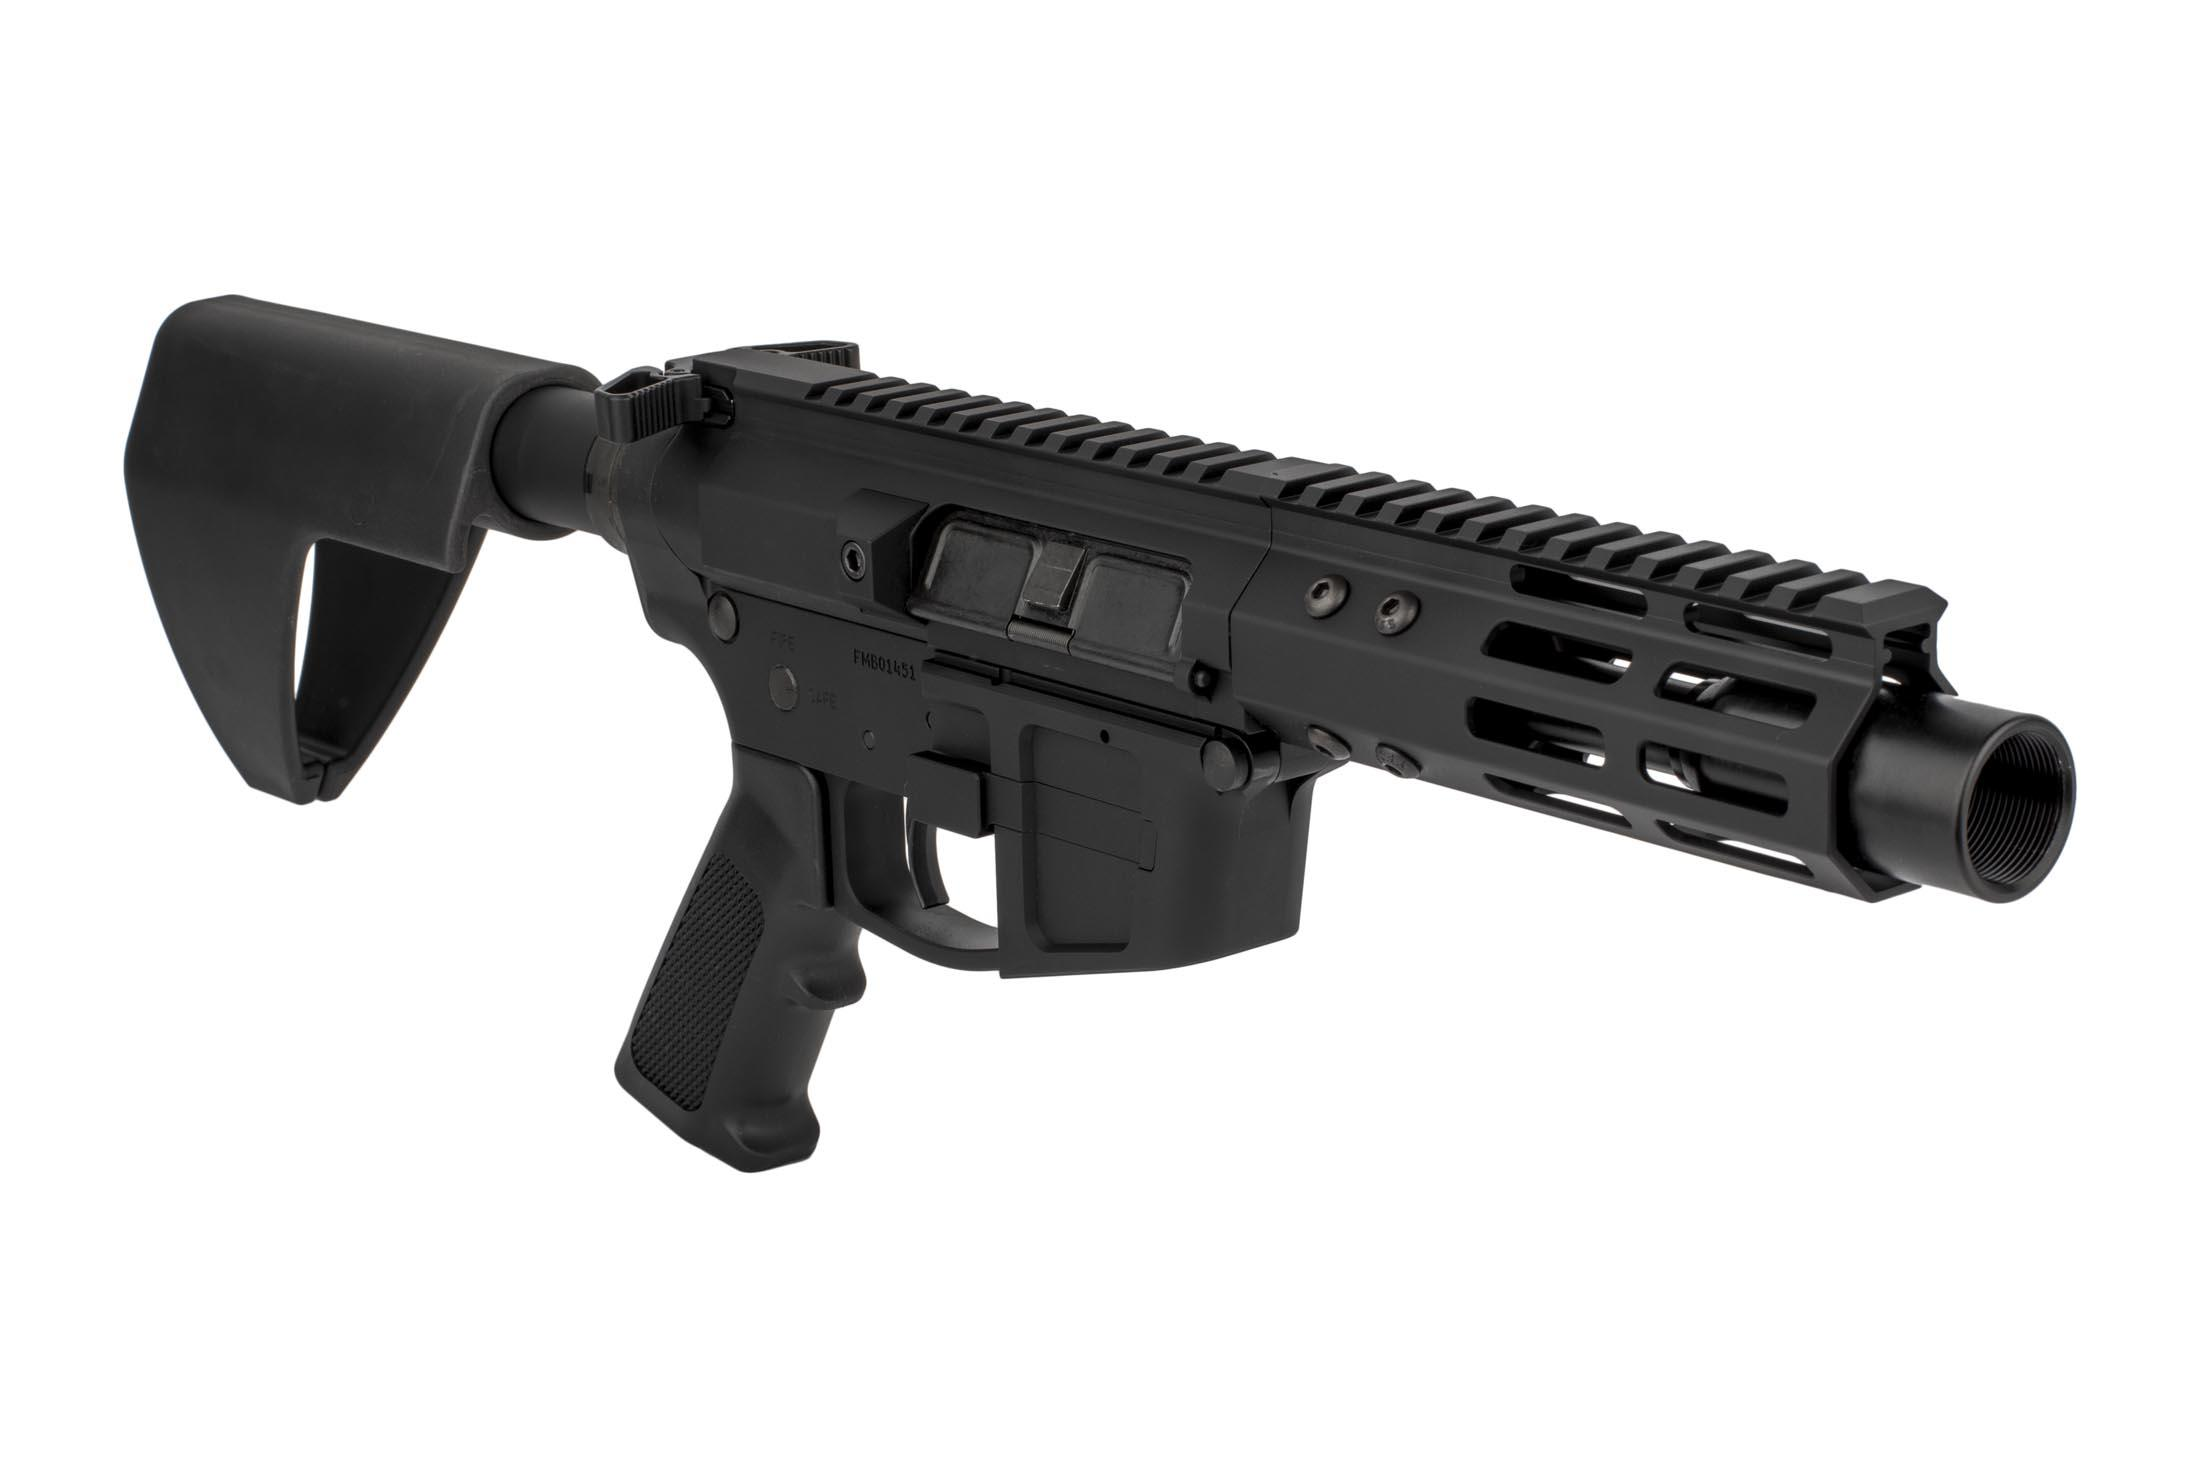 The FM Products FM9 AR9 pistol features a 5.5 inch M-LOK handguard